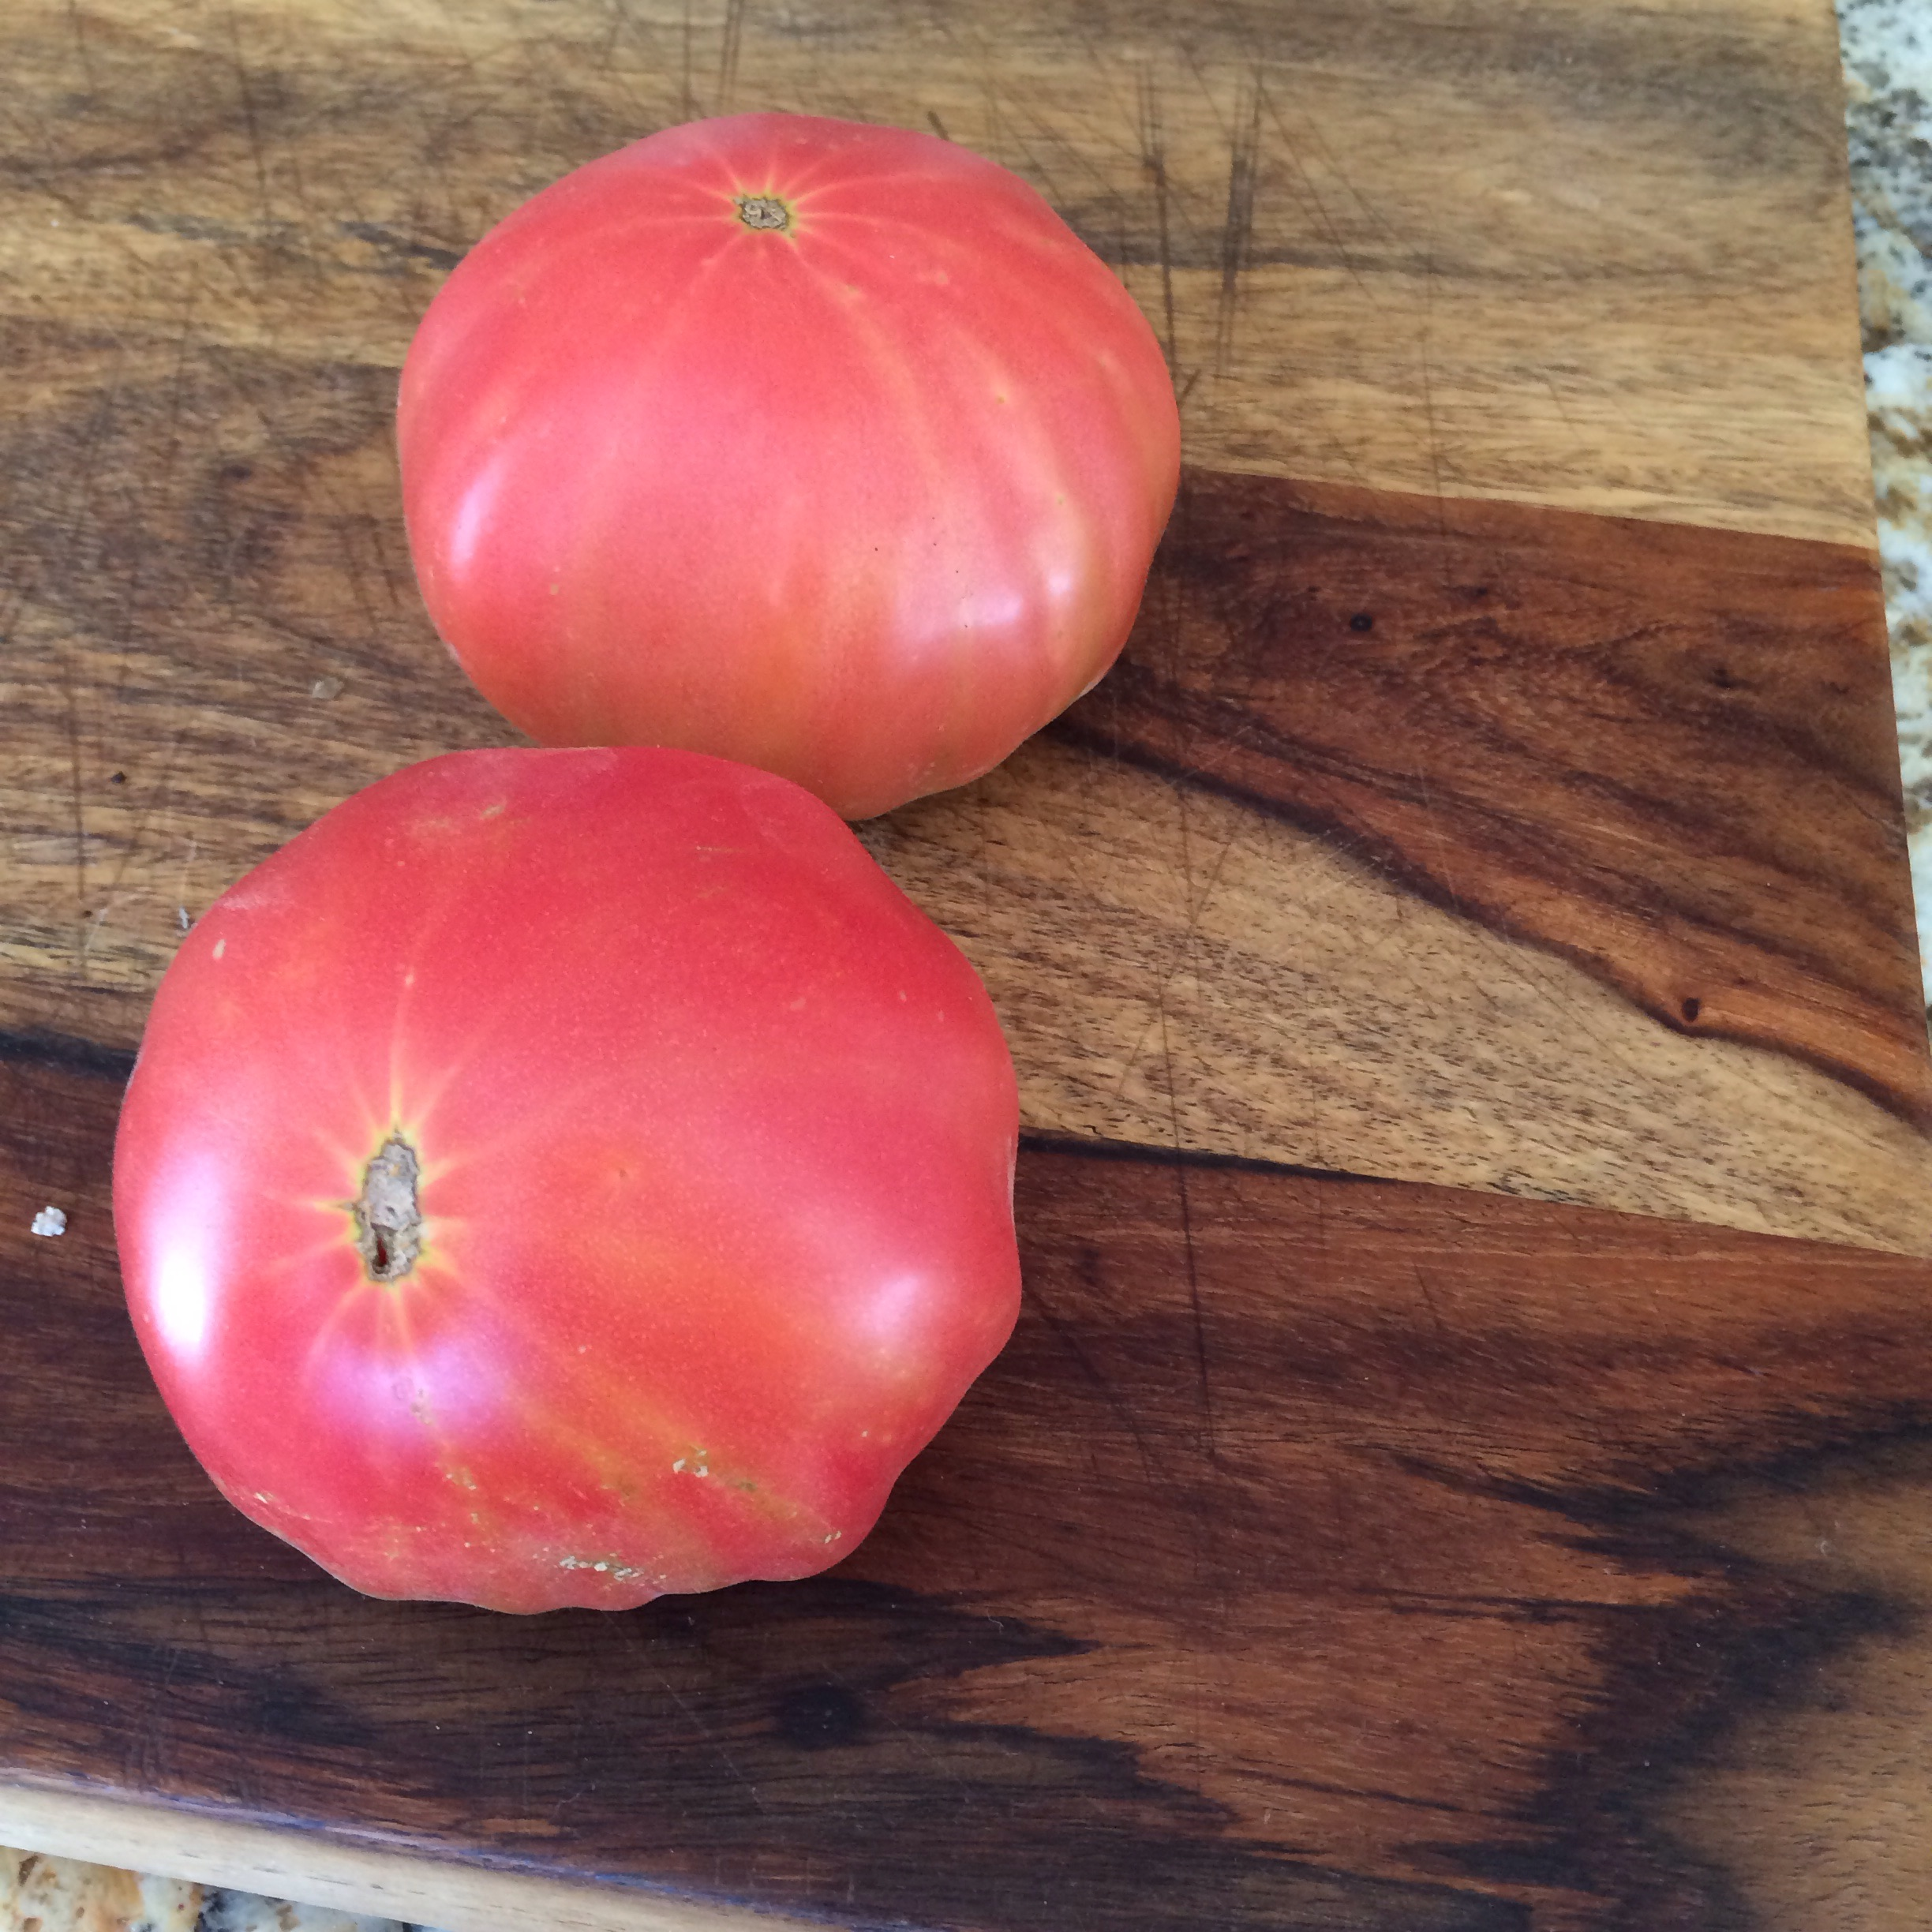 Yummy we have our bio dynamic brandy wine pink tomatoes the first of many to ripen